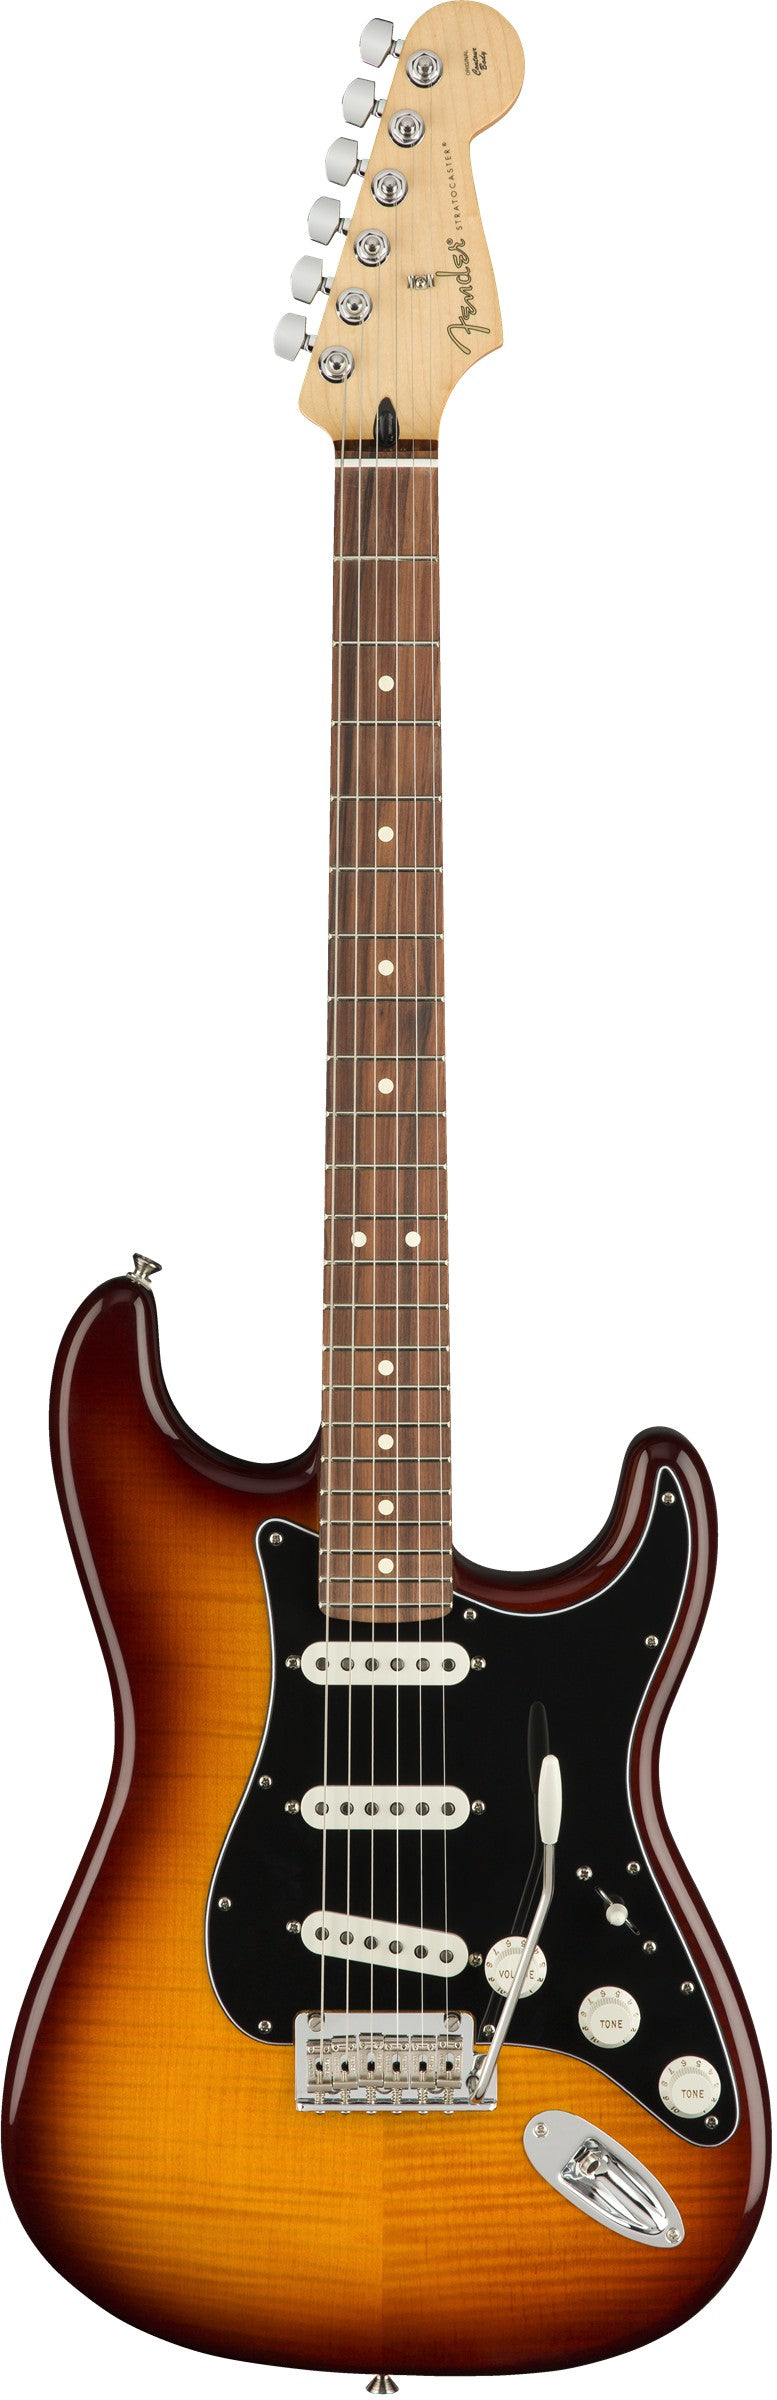 Fender Player Stratocaster Plus Top, Pau Ferro Fingerboard - Tobacco Sunburst